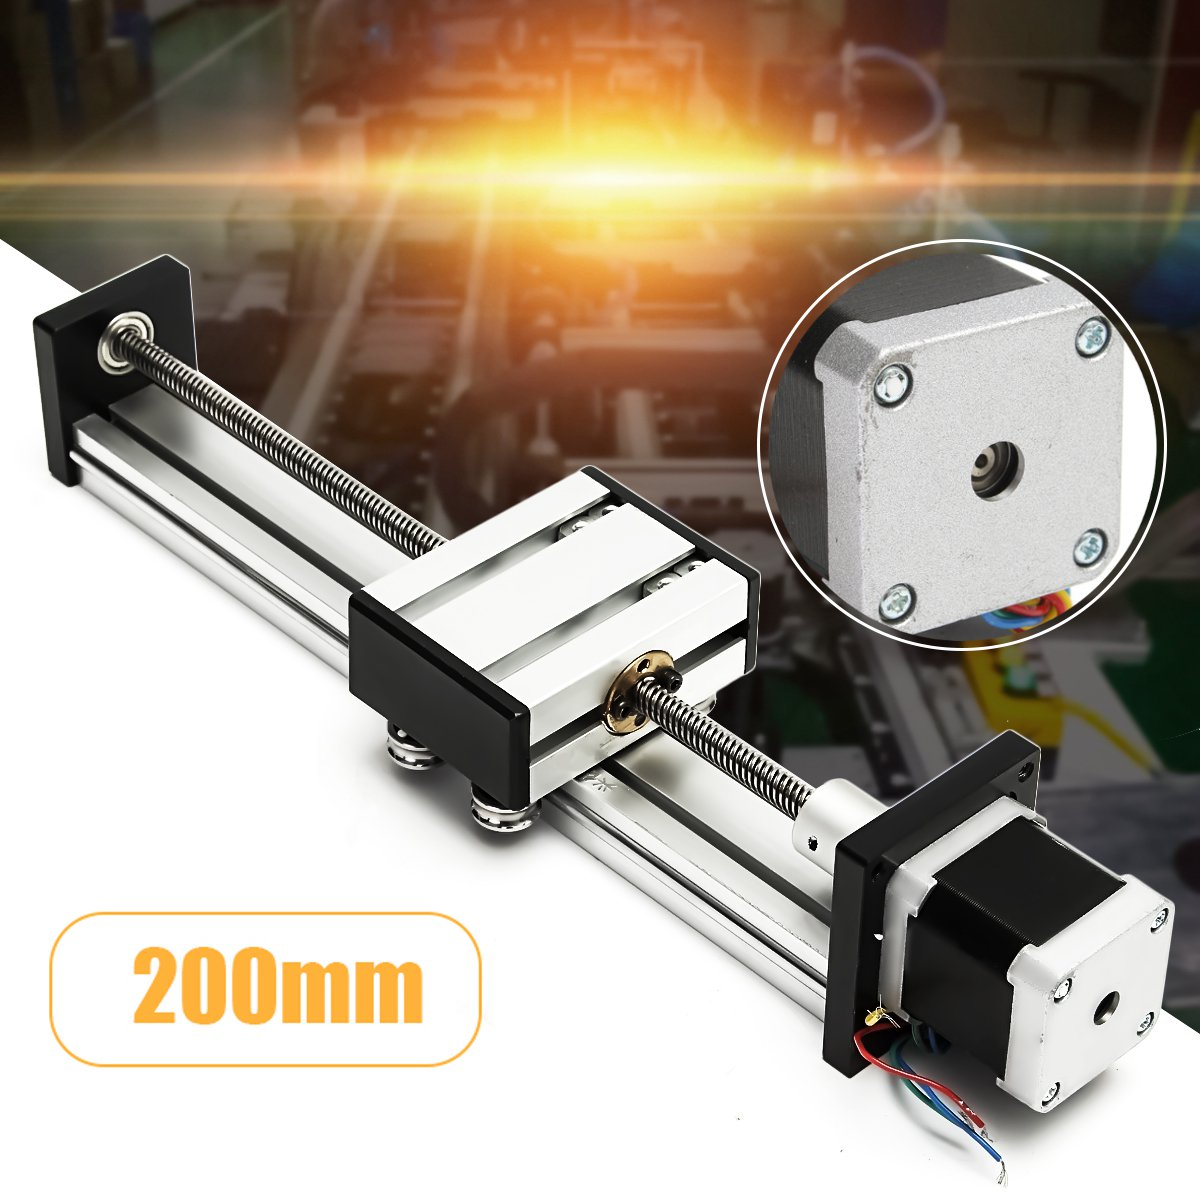 200mm Slide Stroke CNC Linear Motion Lead Screw Slide Stage Stroke 42 Actuator Stepper Motor For Engraving Machine funssor 50mm 150mm slide stroke cnc z axis slide linear motion nema17 stepper motor for reprap engraving machine